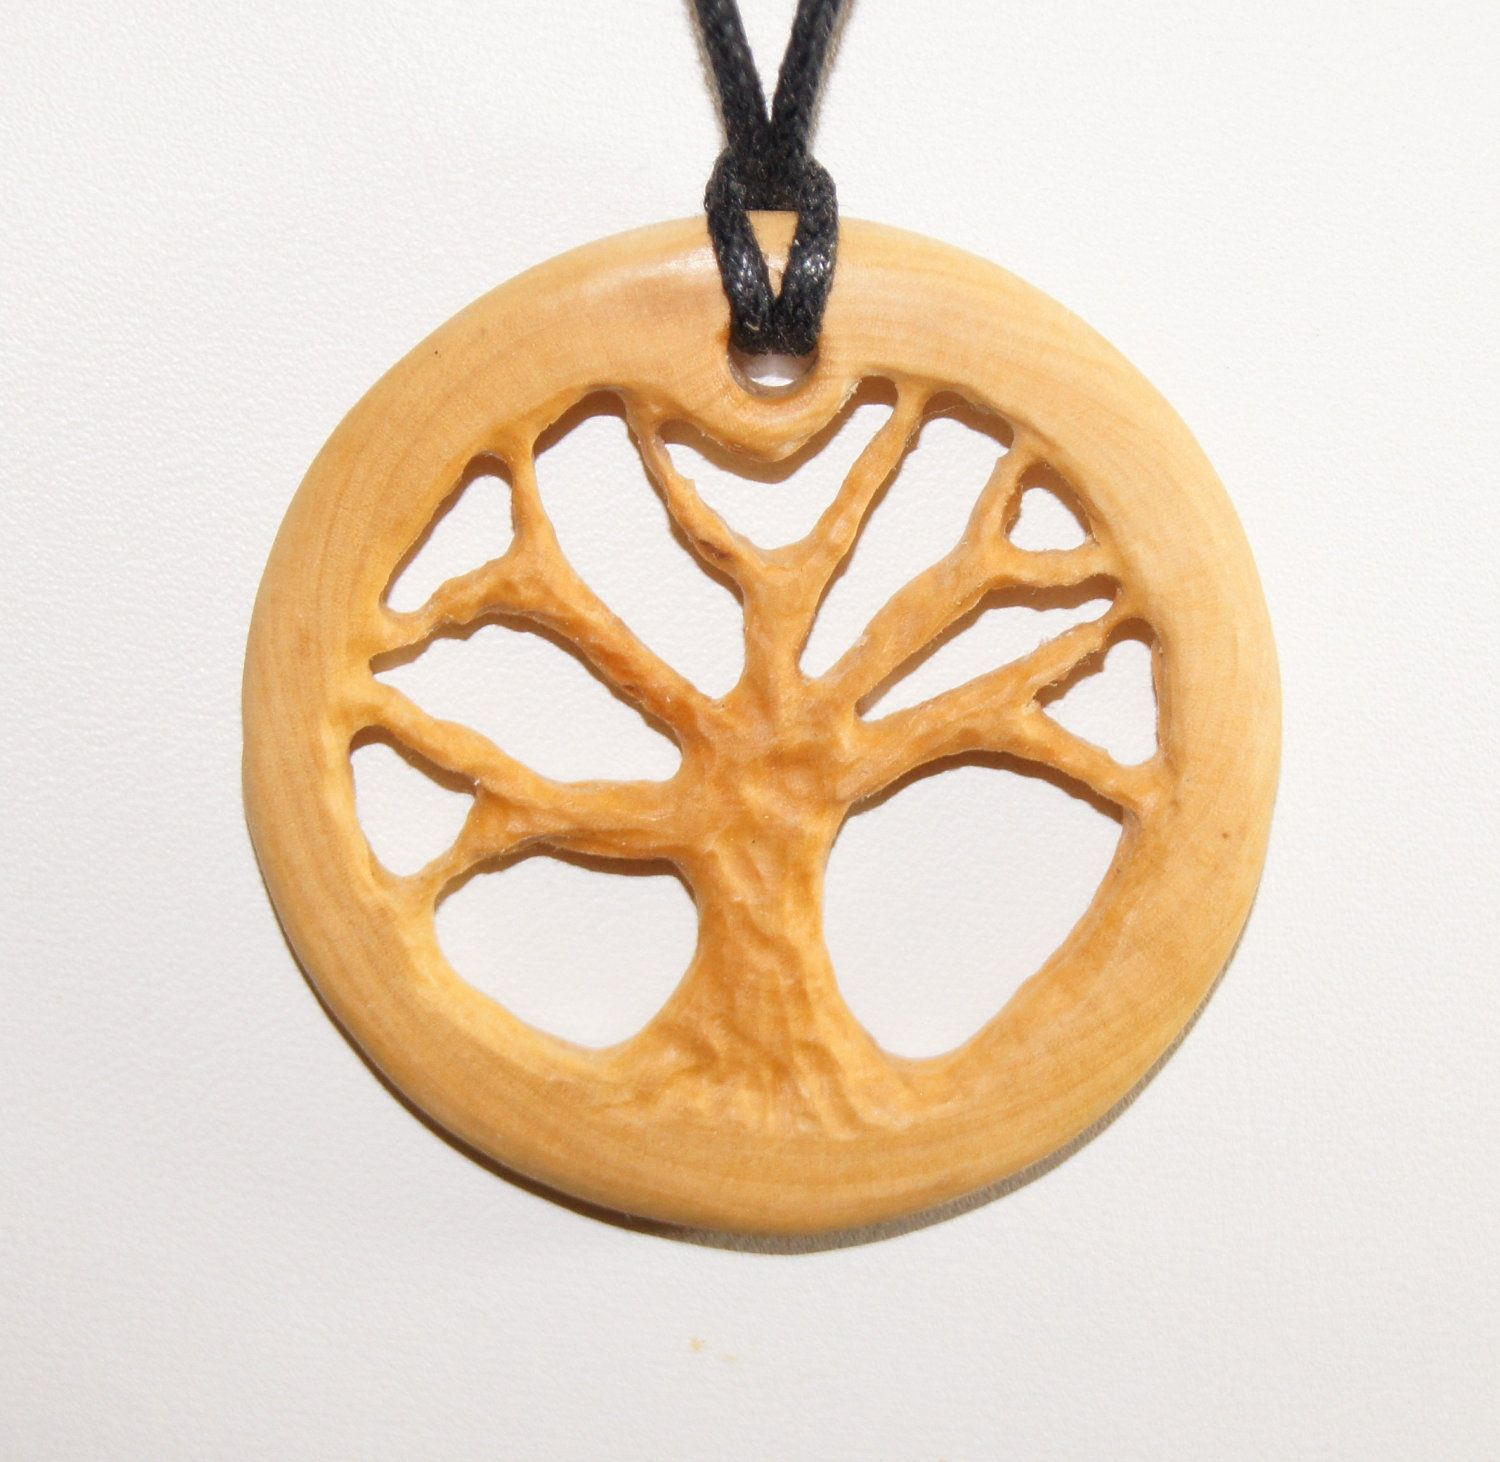 custom Wood Pendants   Request a custom order and have something made just for you.